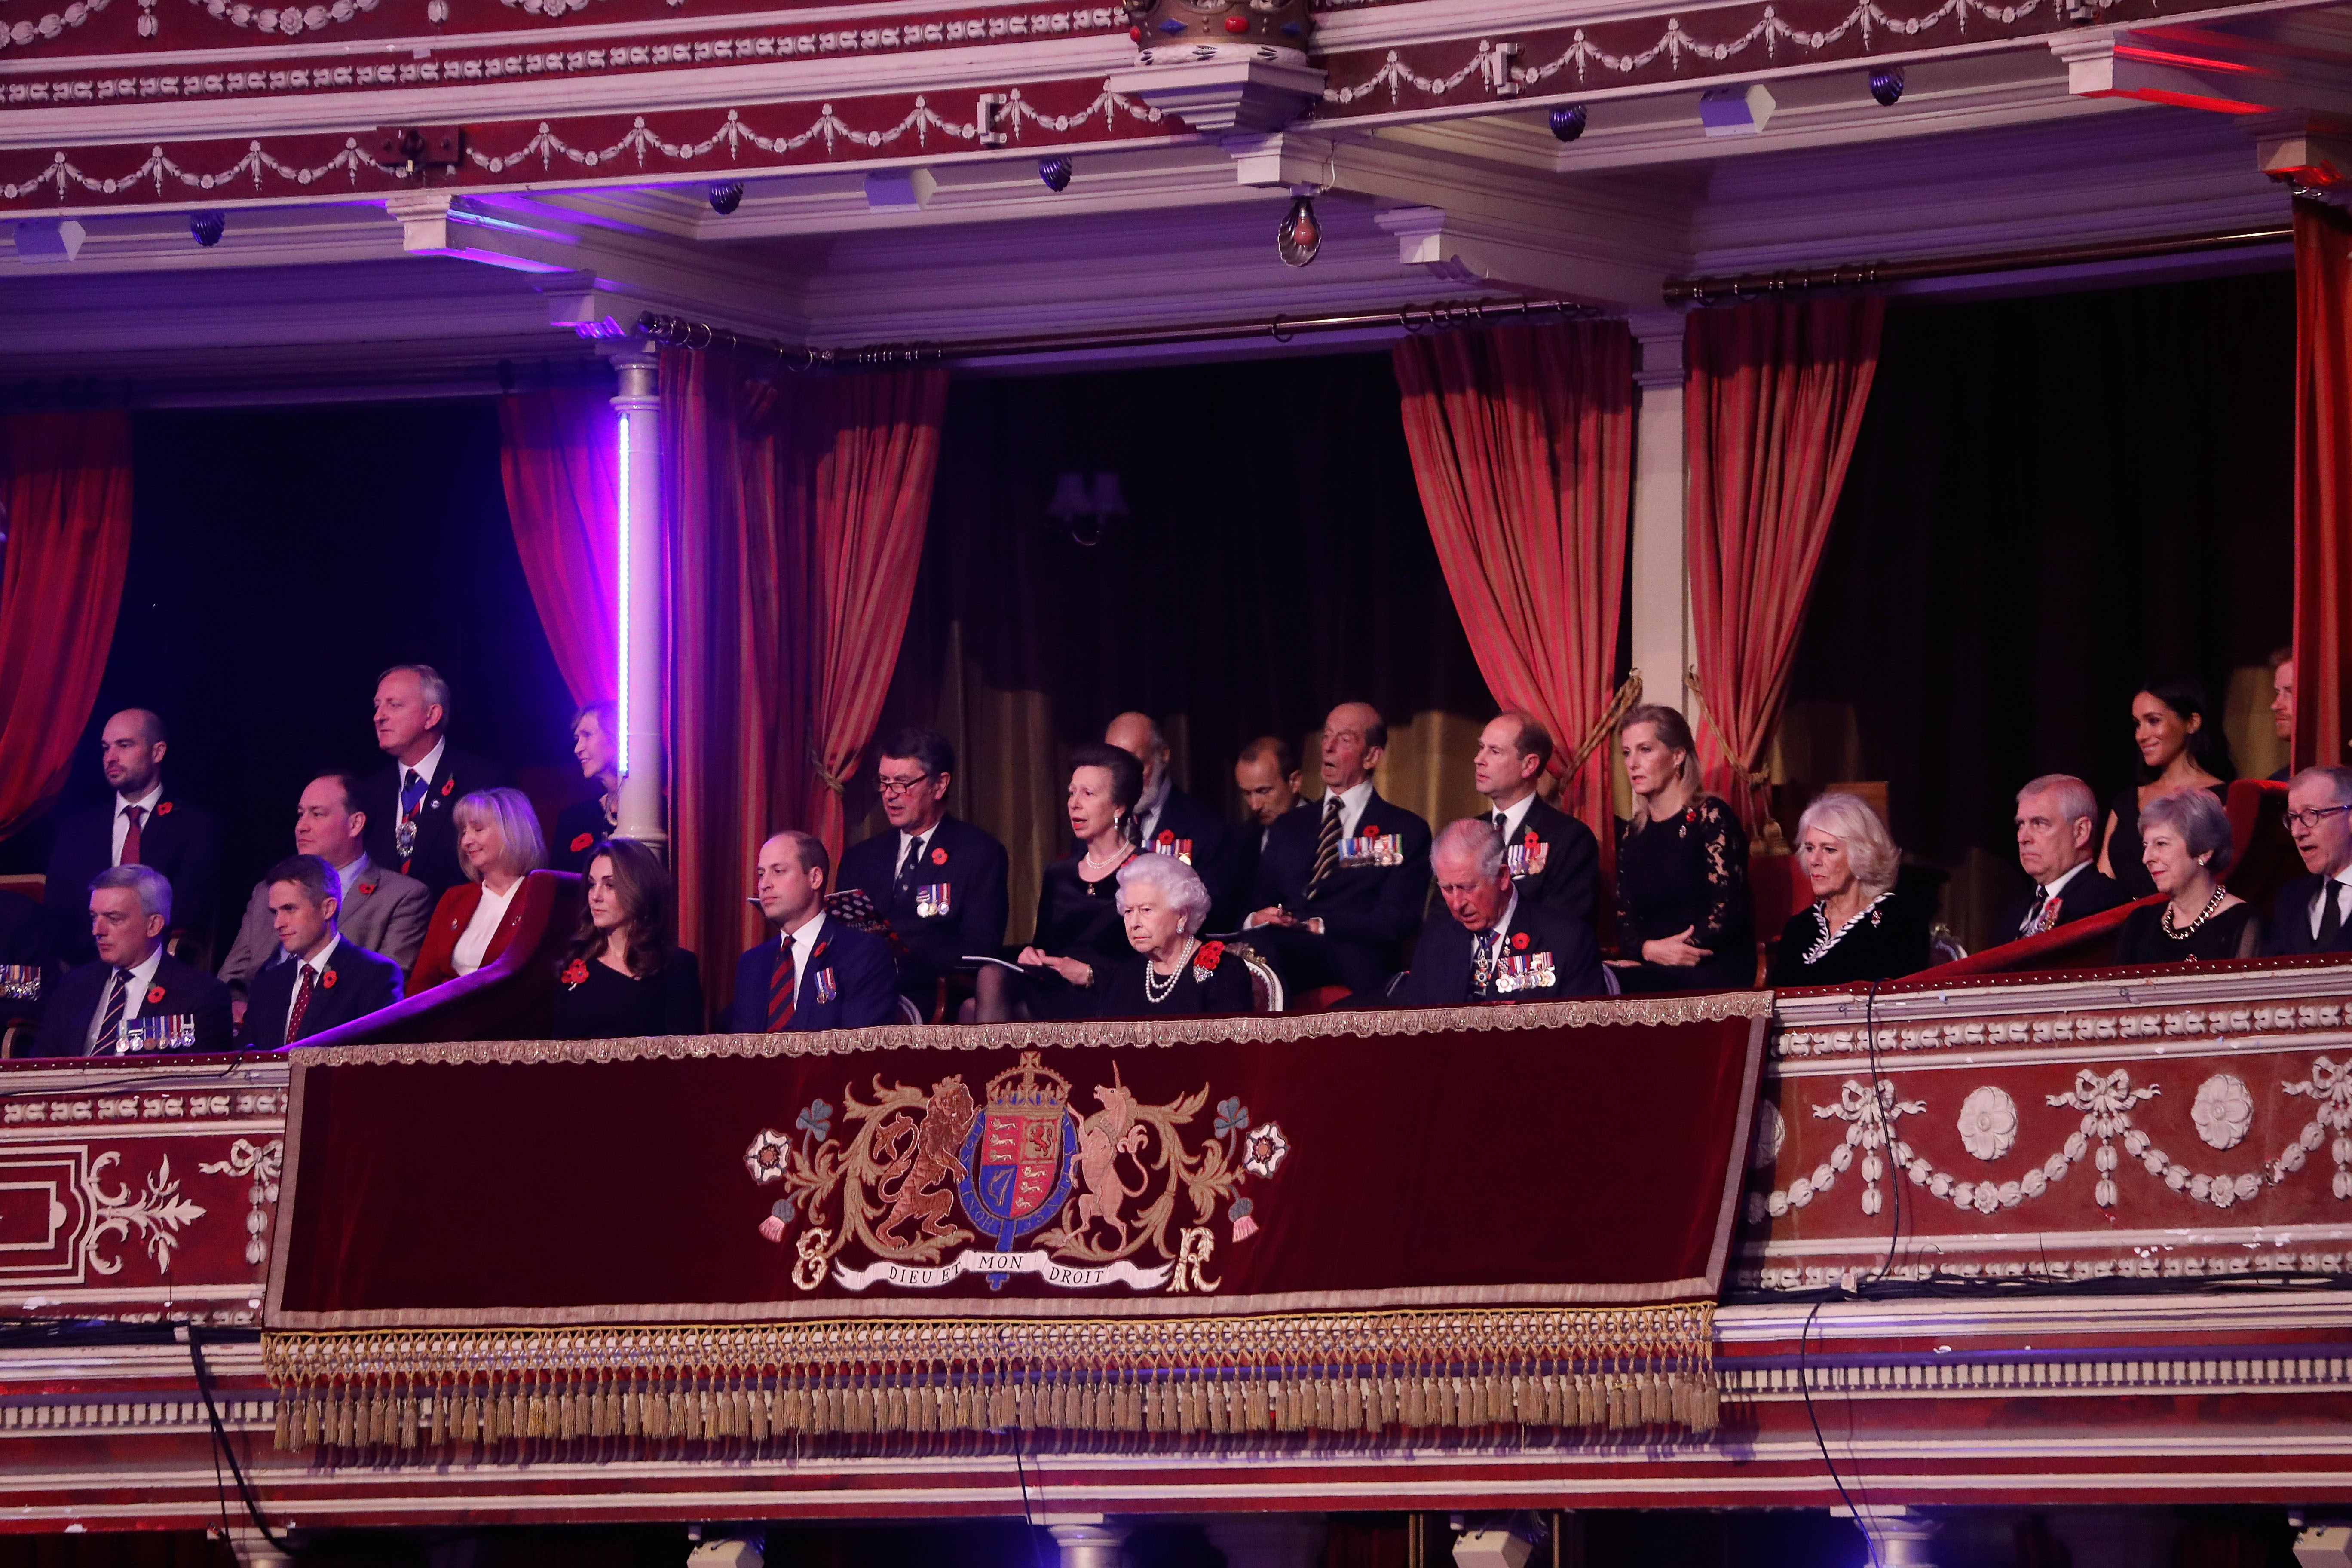 The Festival of Remembrance